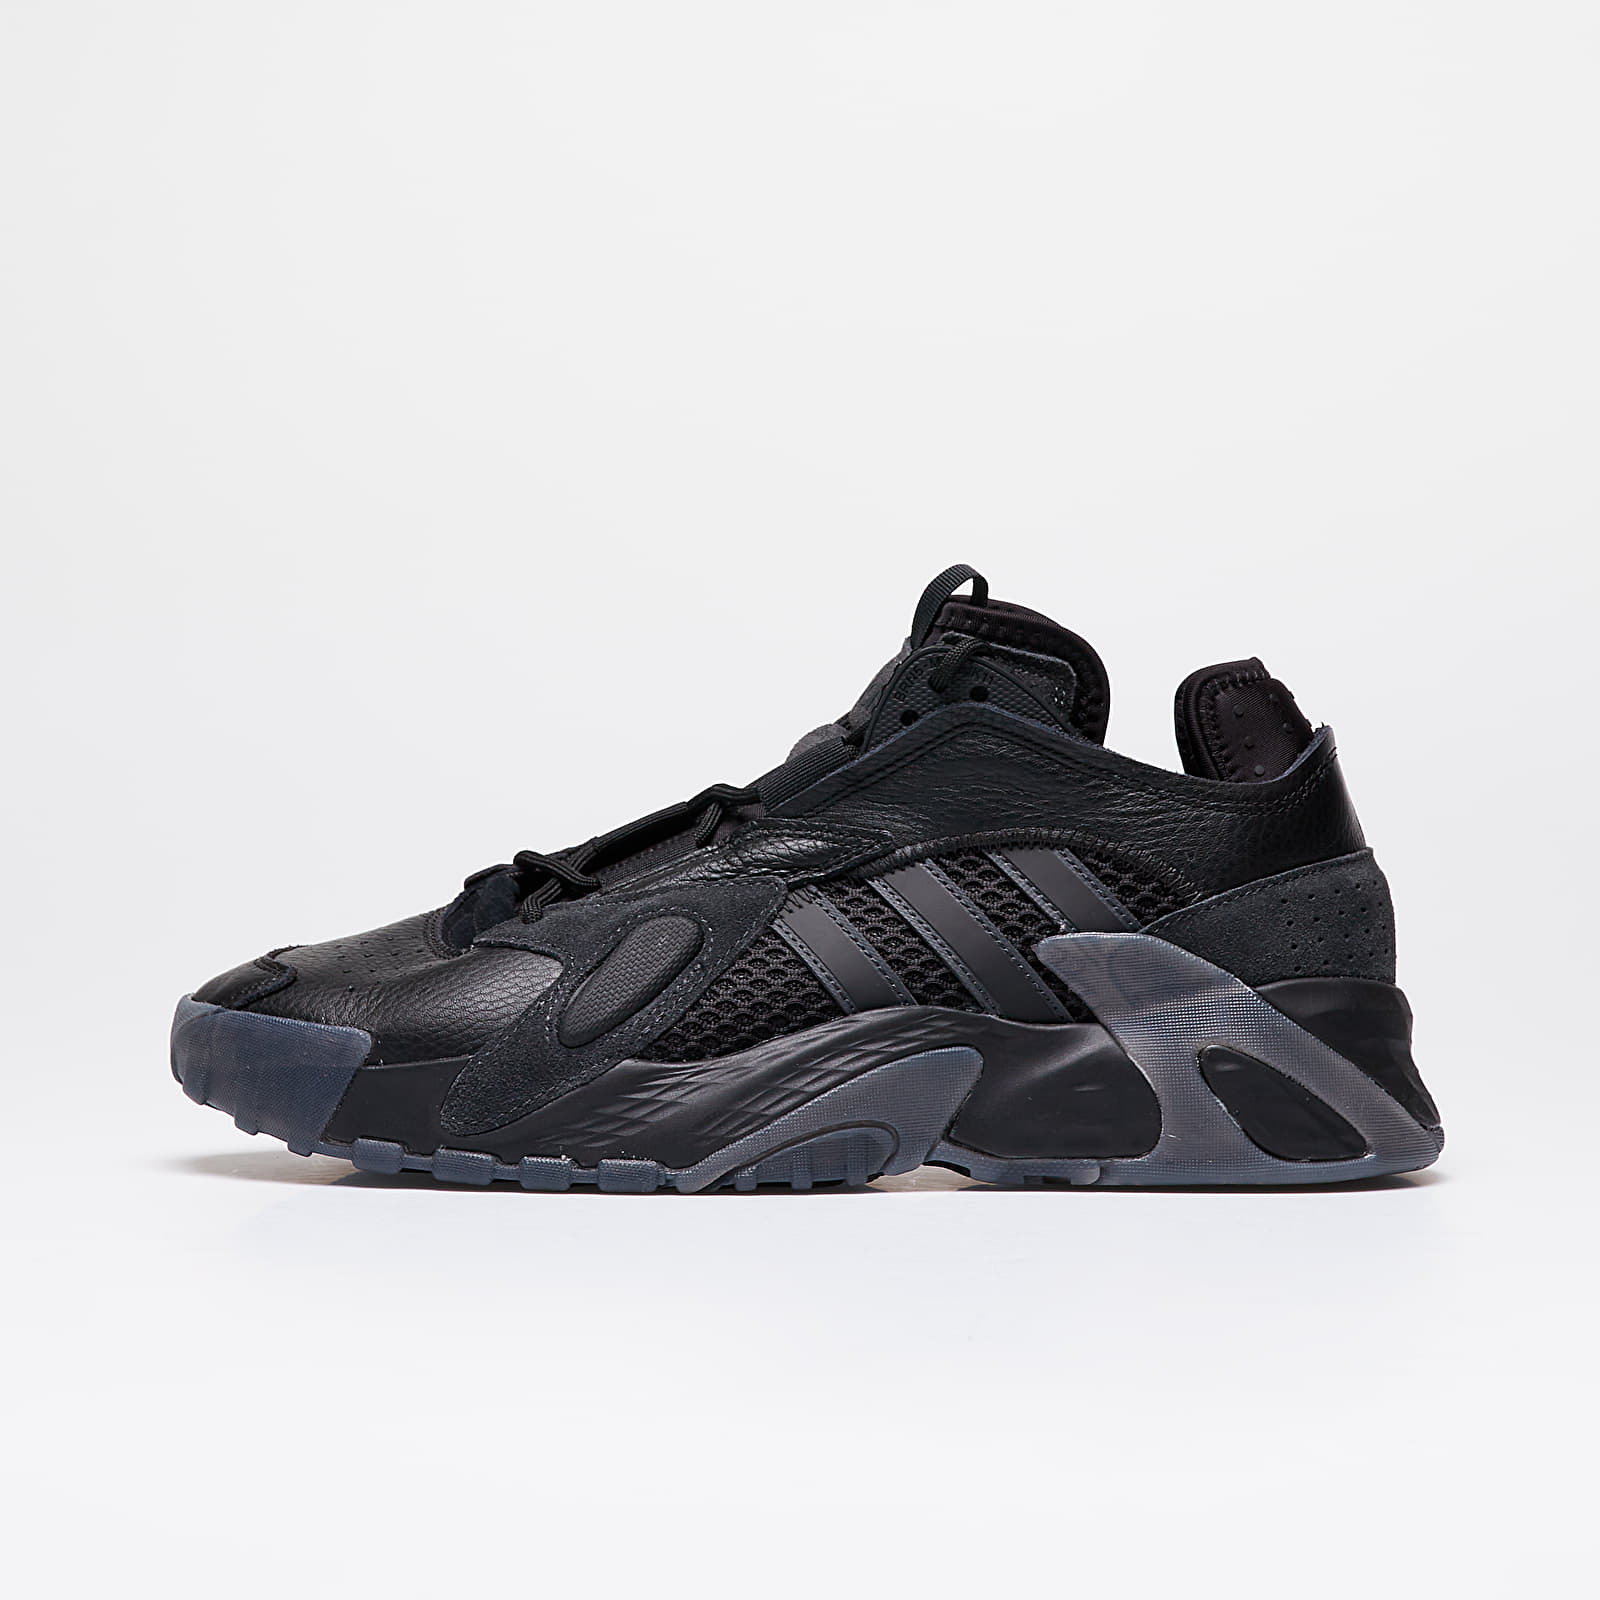 Chaussures et baskets homme adidas Streetball Core Black/ Carbon/ Grey Five